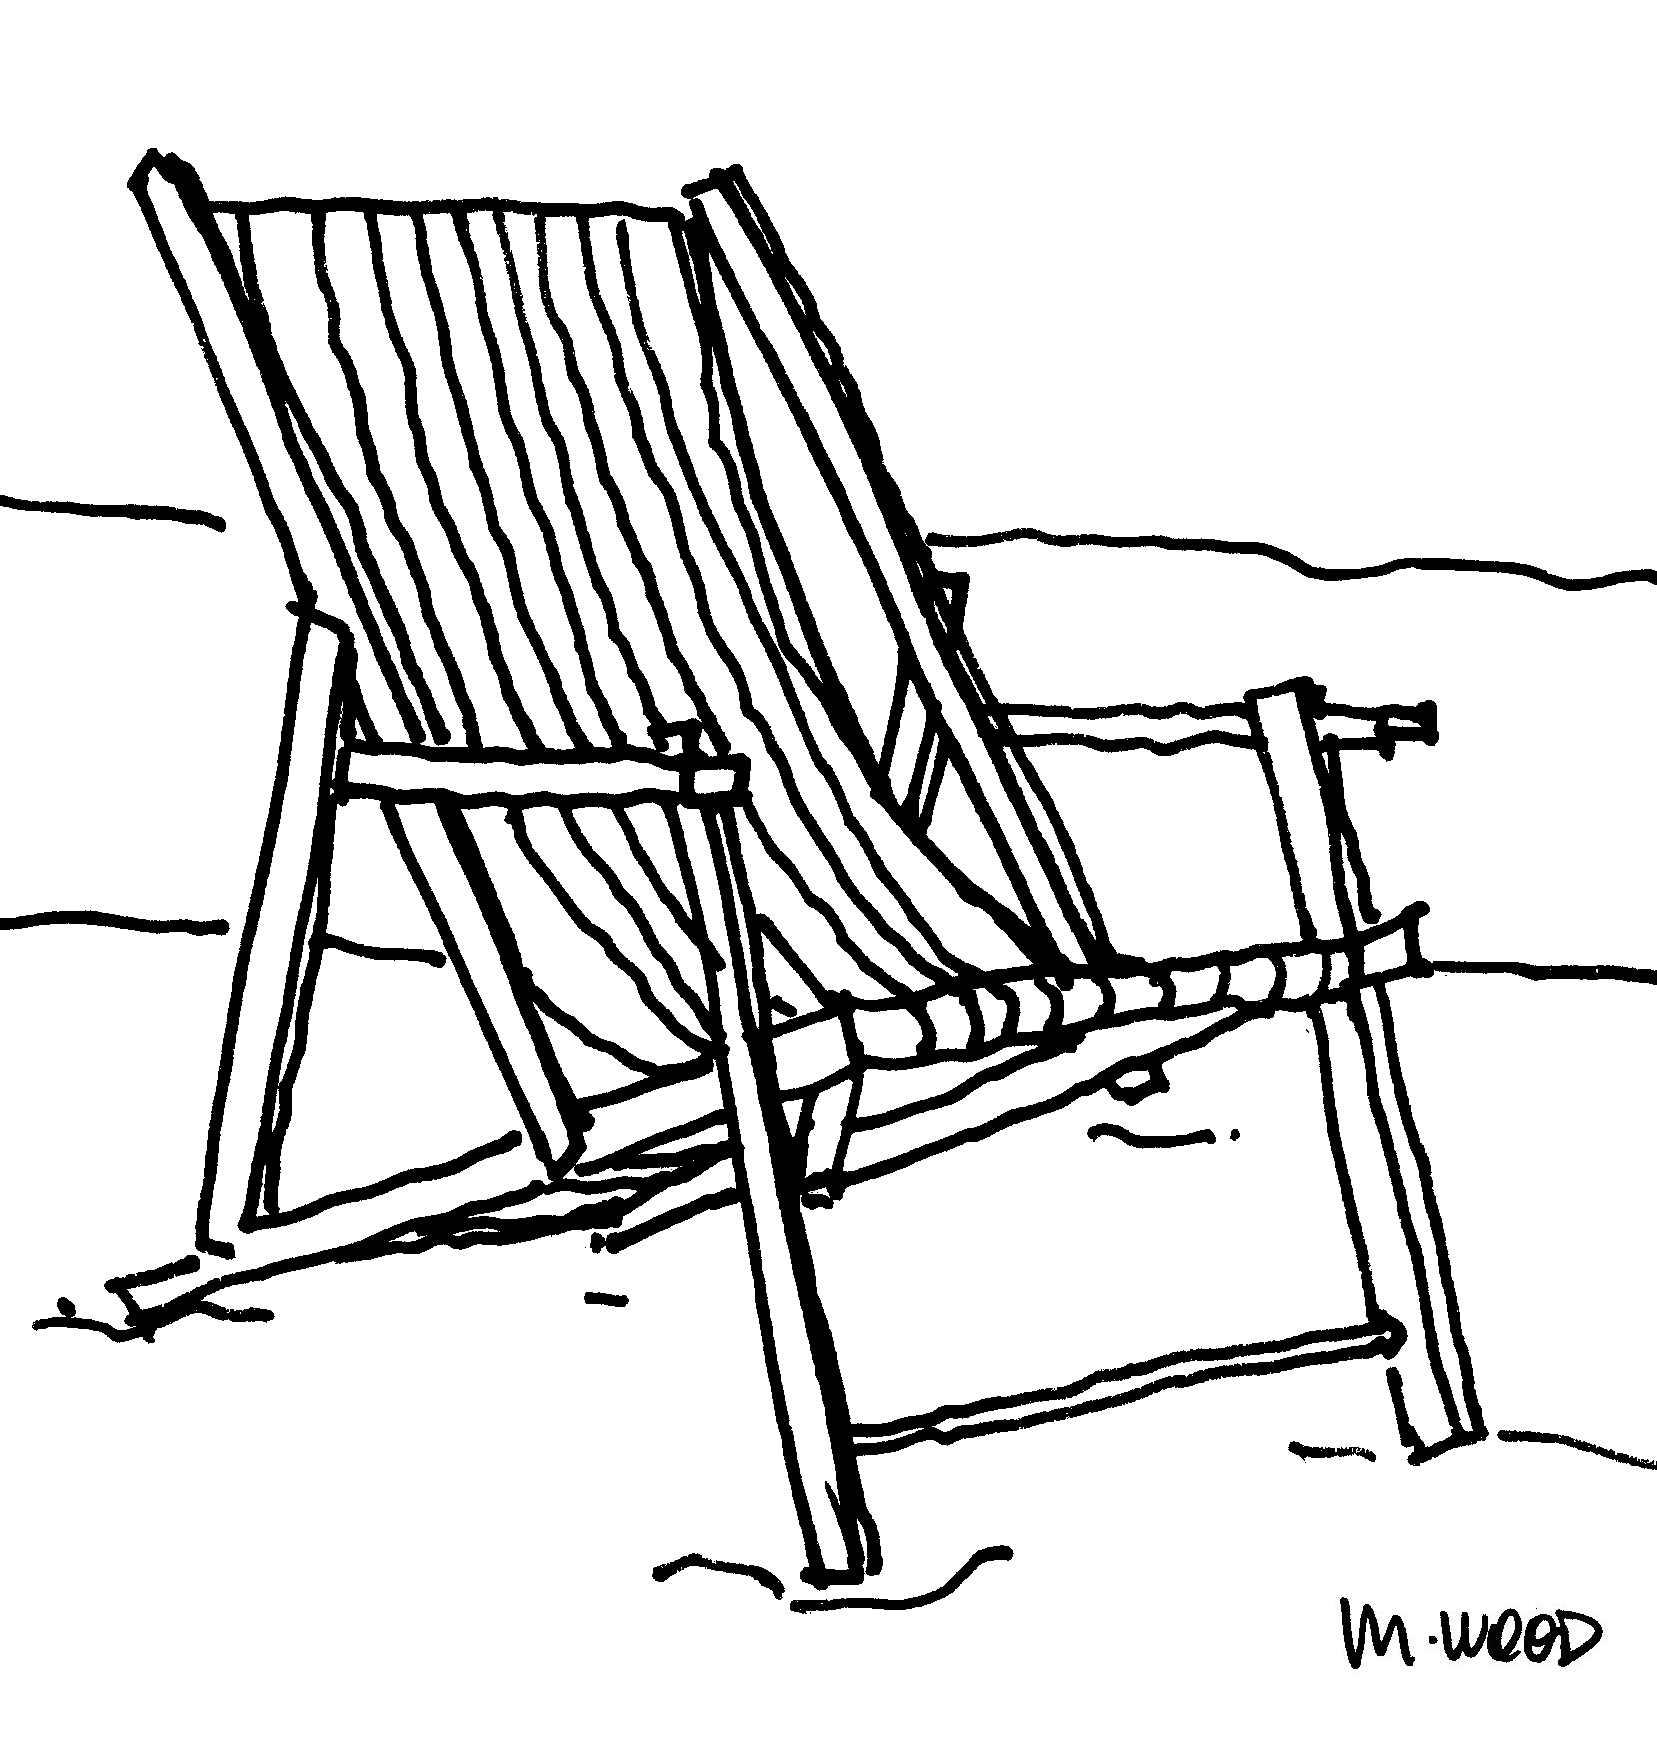 How To Draw A Beach Chair | www.pixshark.com - Images ...